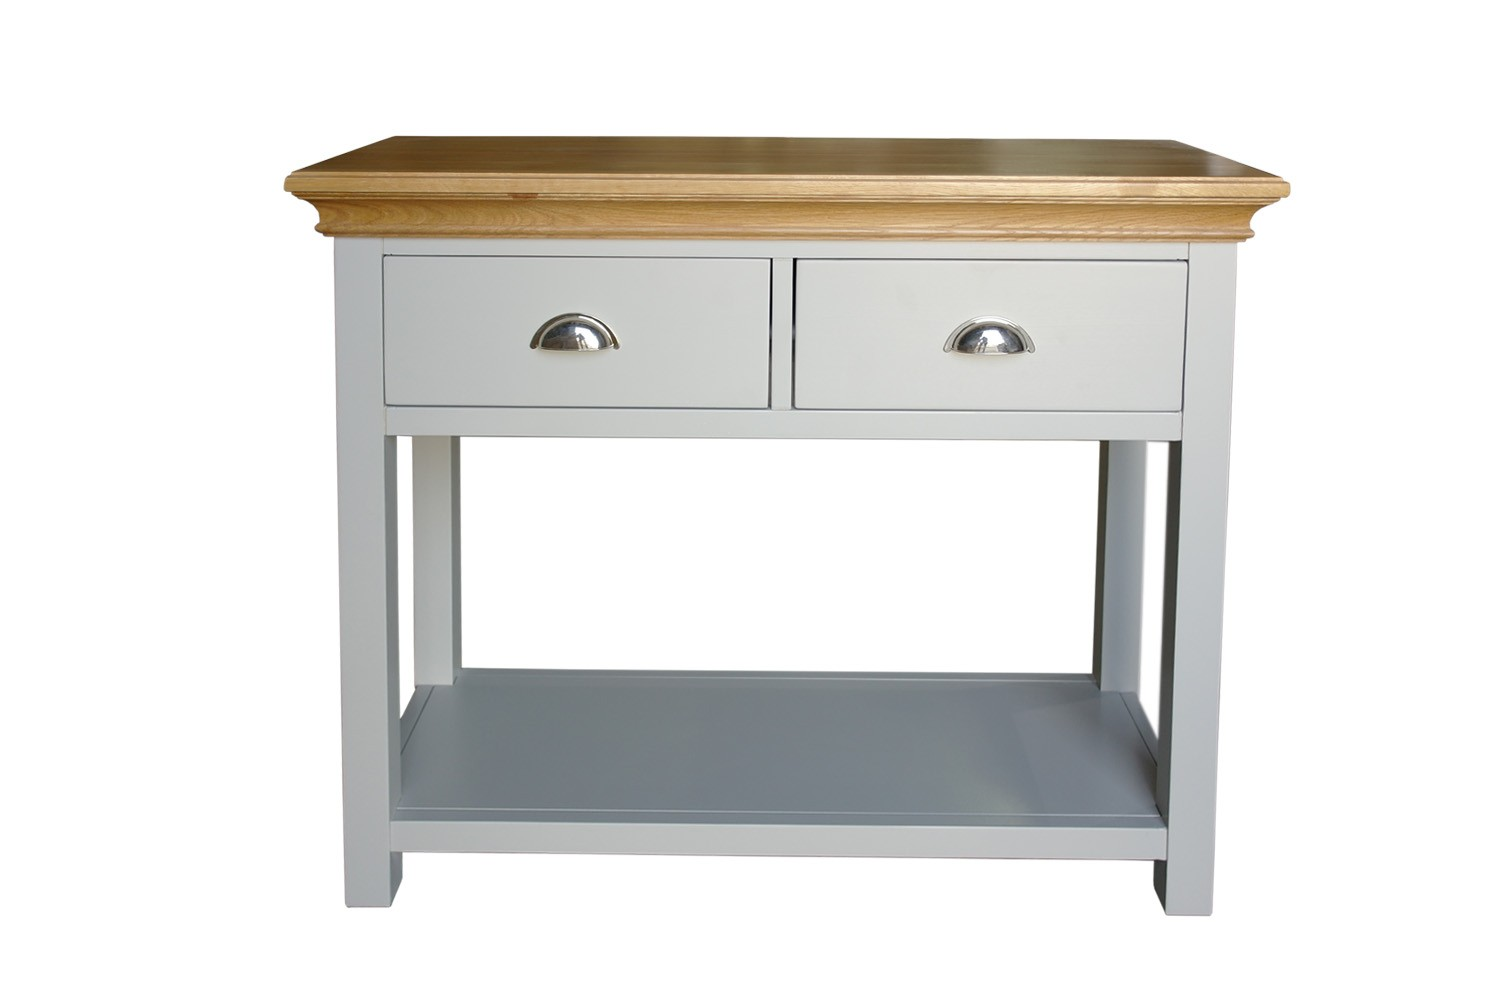 Console Table solid wood, קונסולה מעץ, קונסולה מעץ מלא, רהיטים מעץ מלא, ריהוט מעץ מלא, ריהוט מעץ,